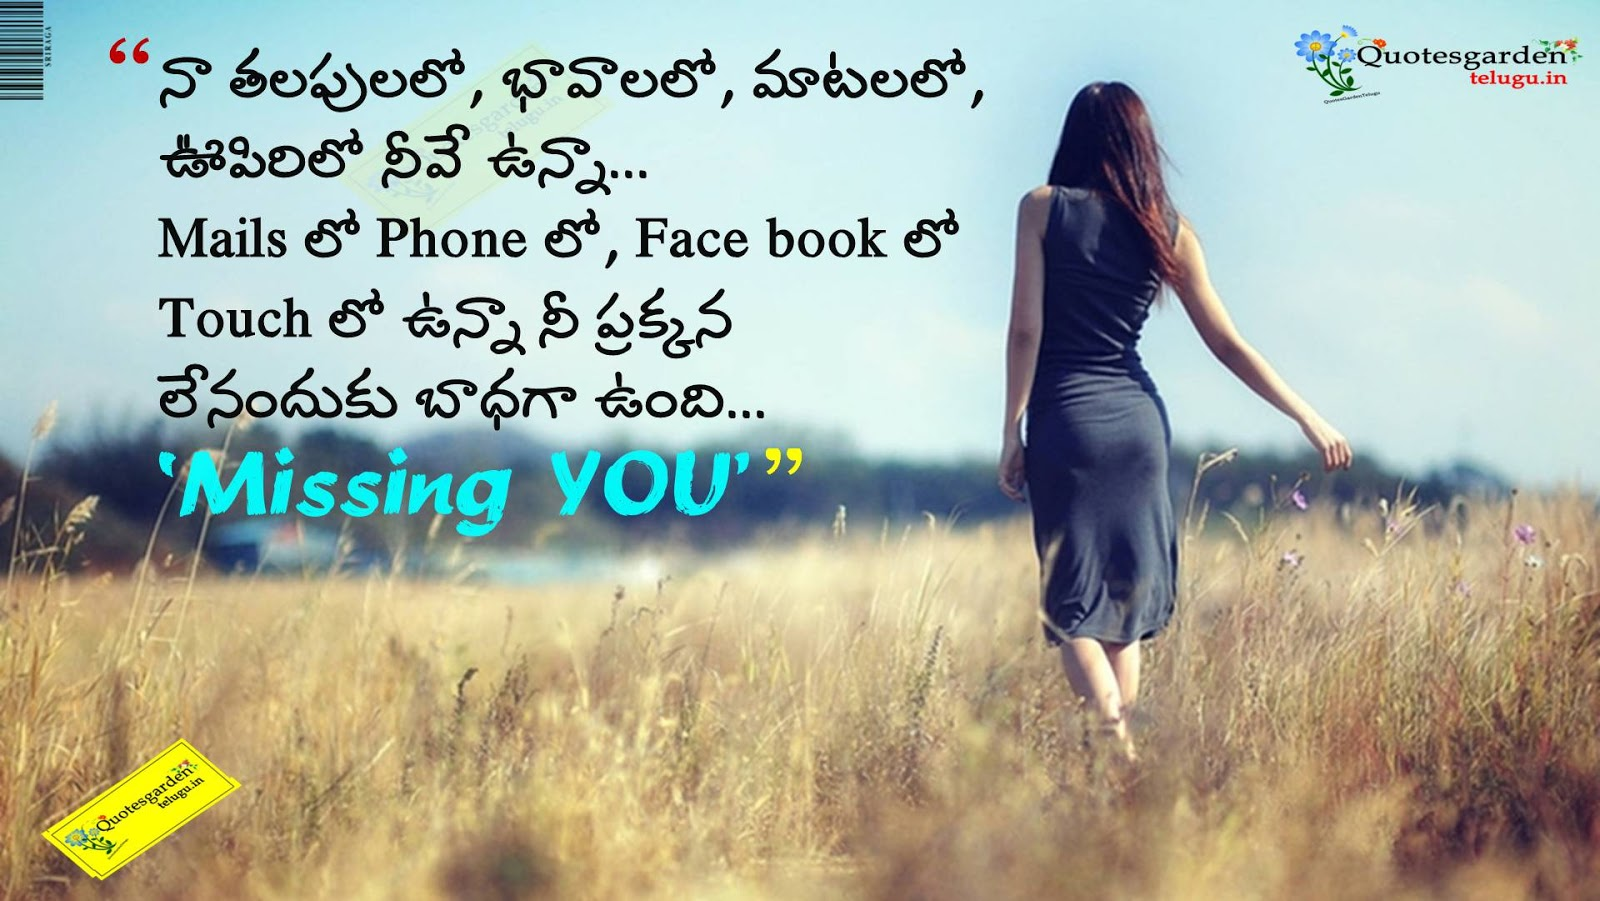 missing you friendship day quotes in telugu heart touching telugu love quotes 754 quotes